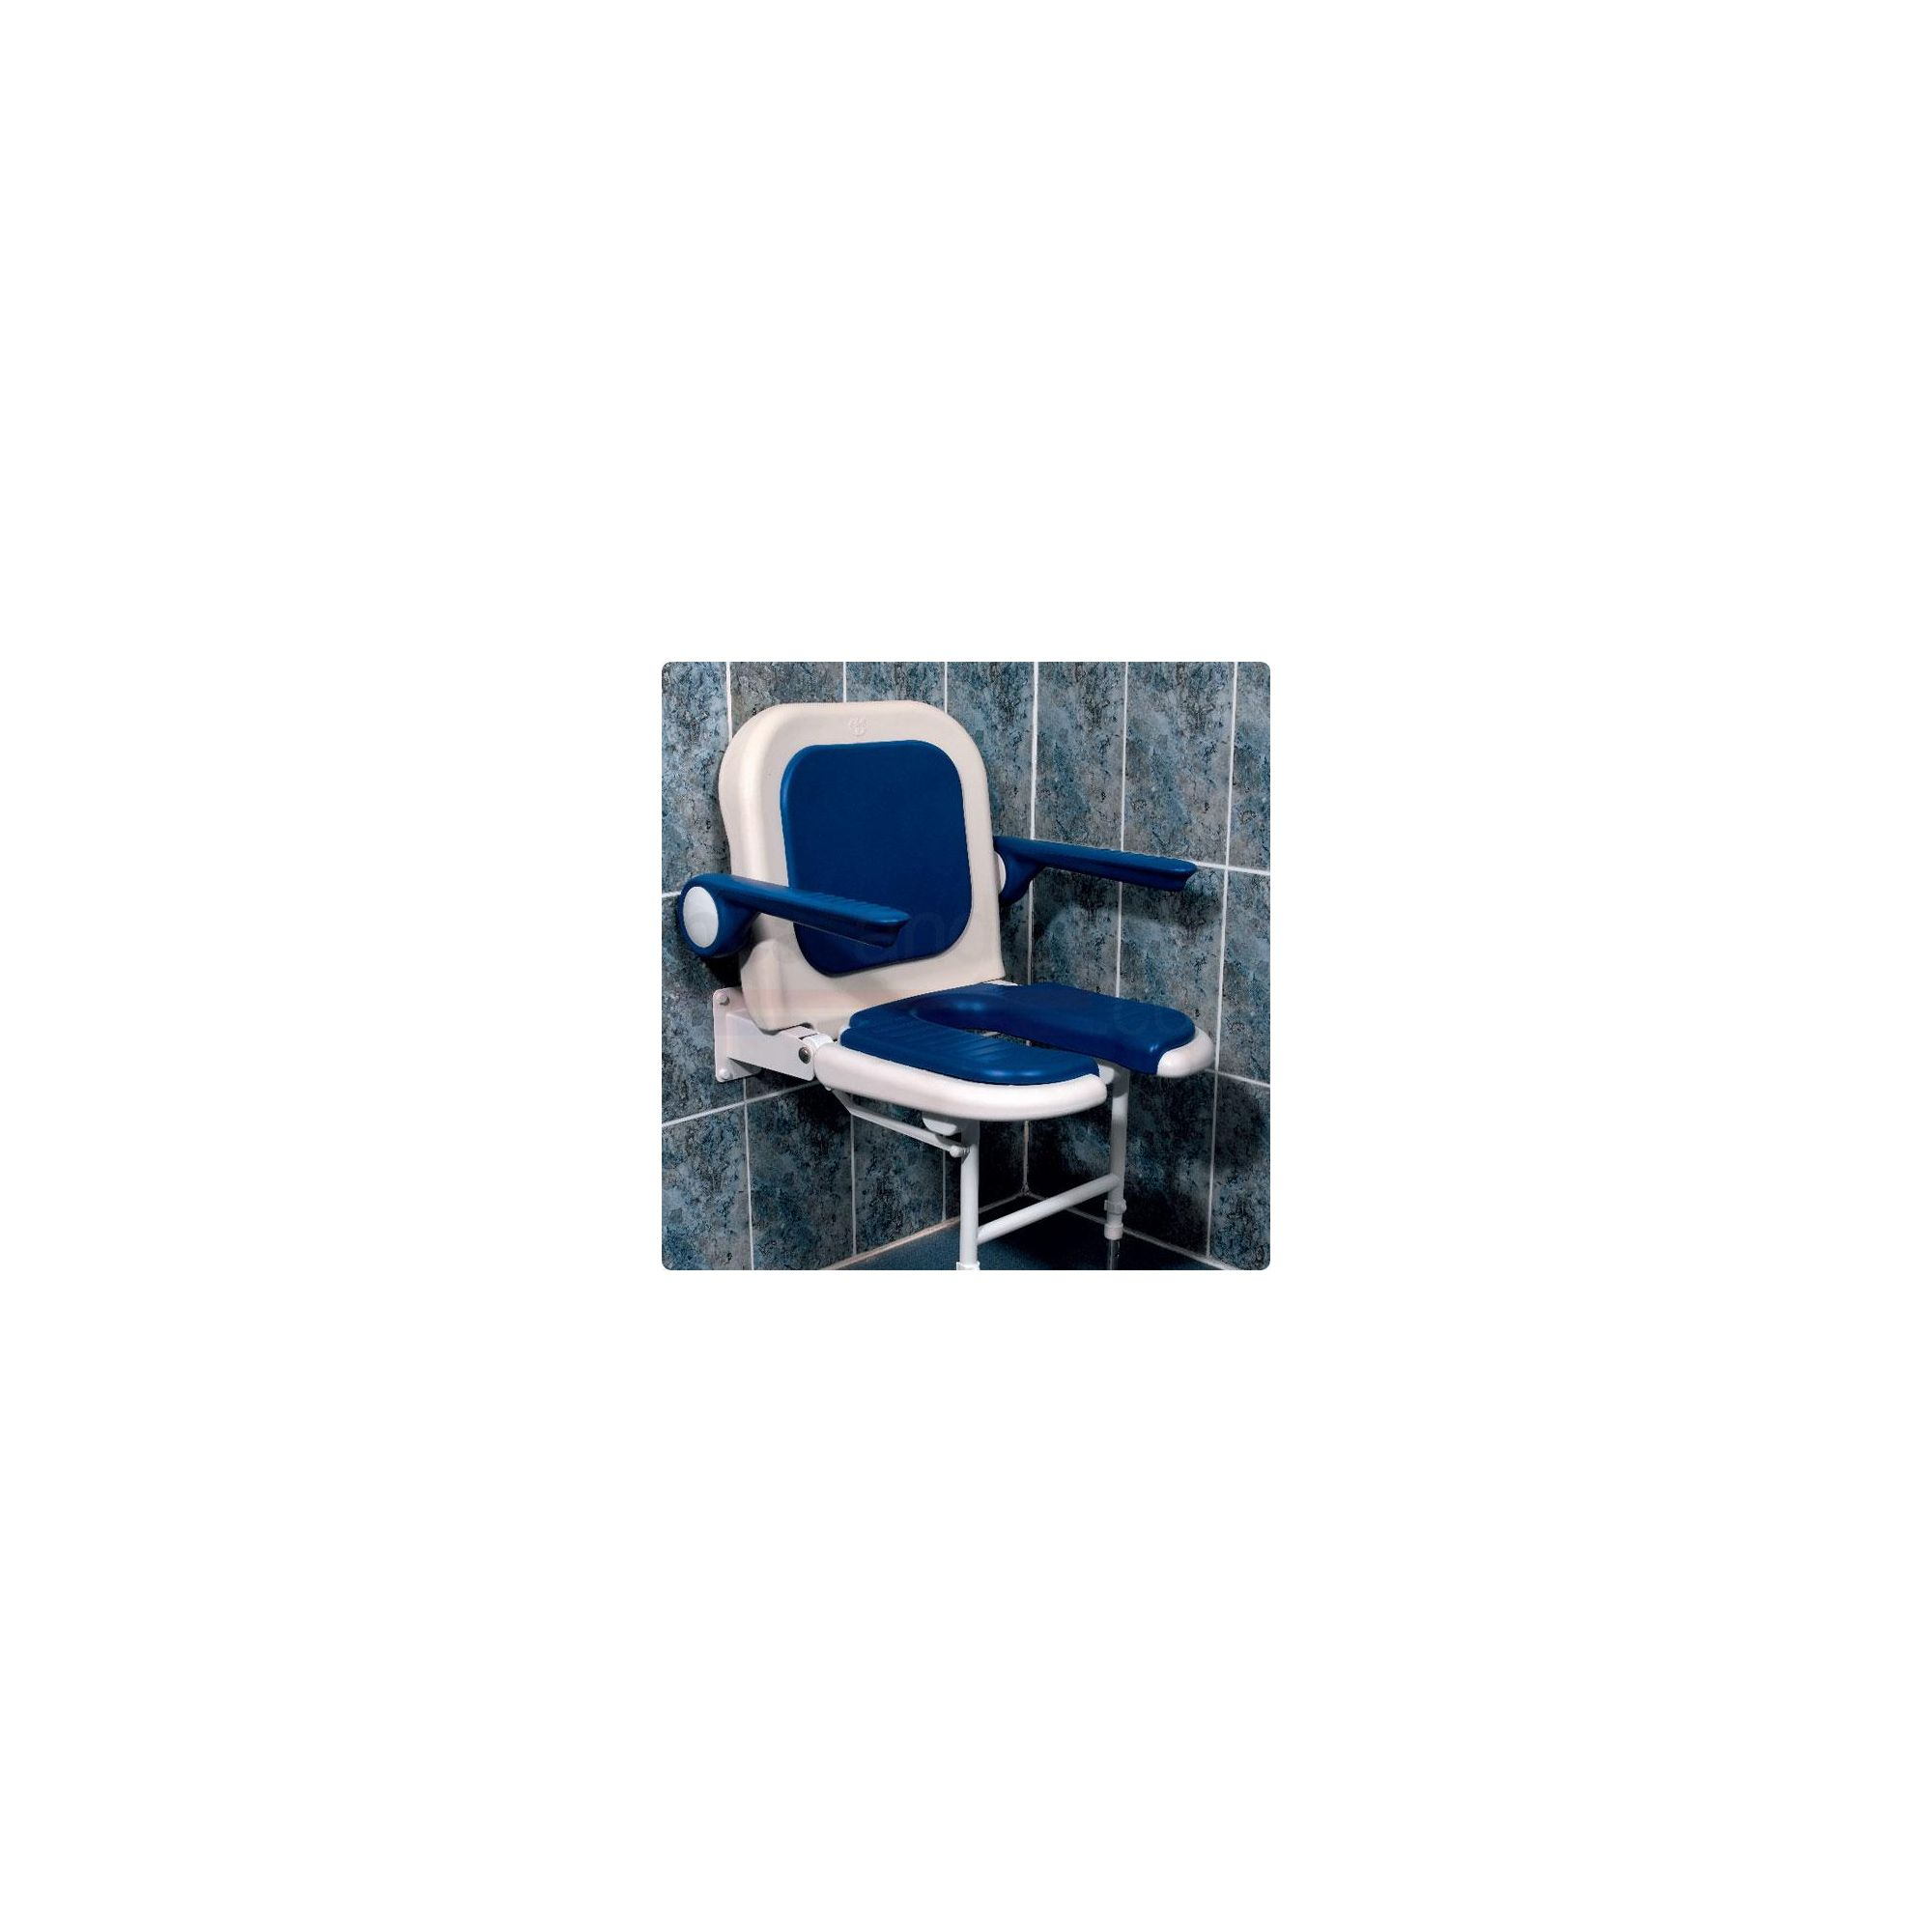 AKW 4000 Series Standard Fold Up Horseshoe Shower Seat Blue with Back and Blue Arms at Tesco Direct